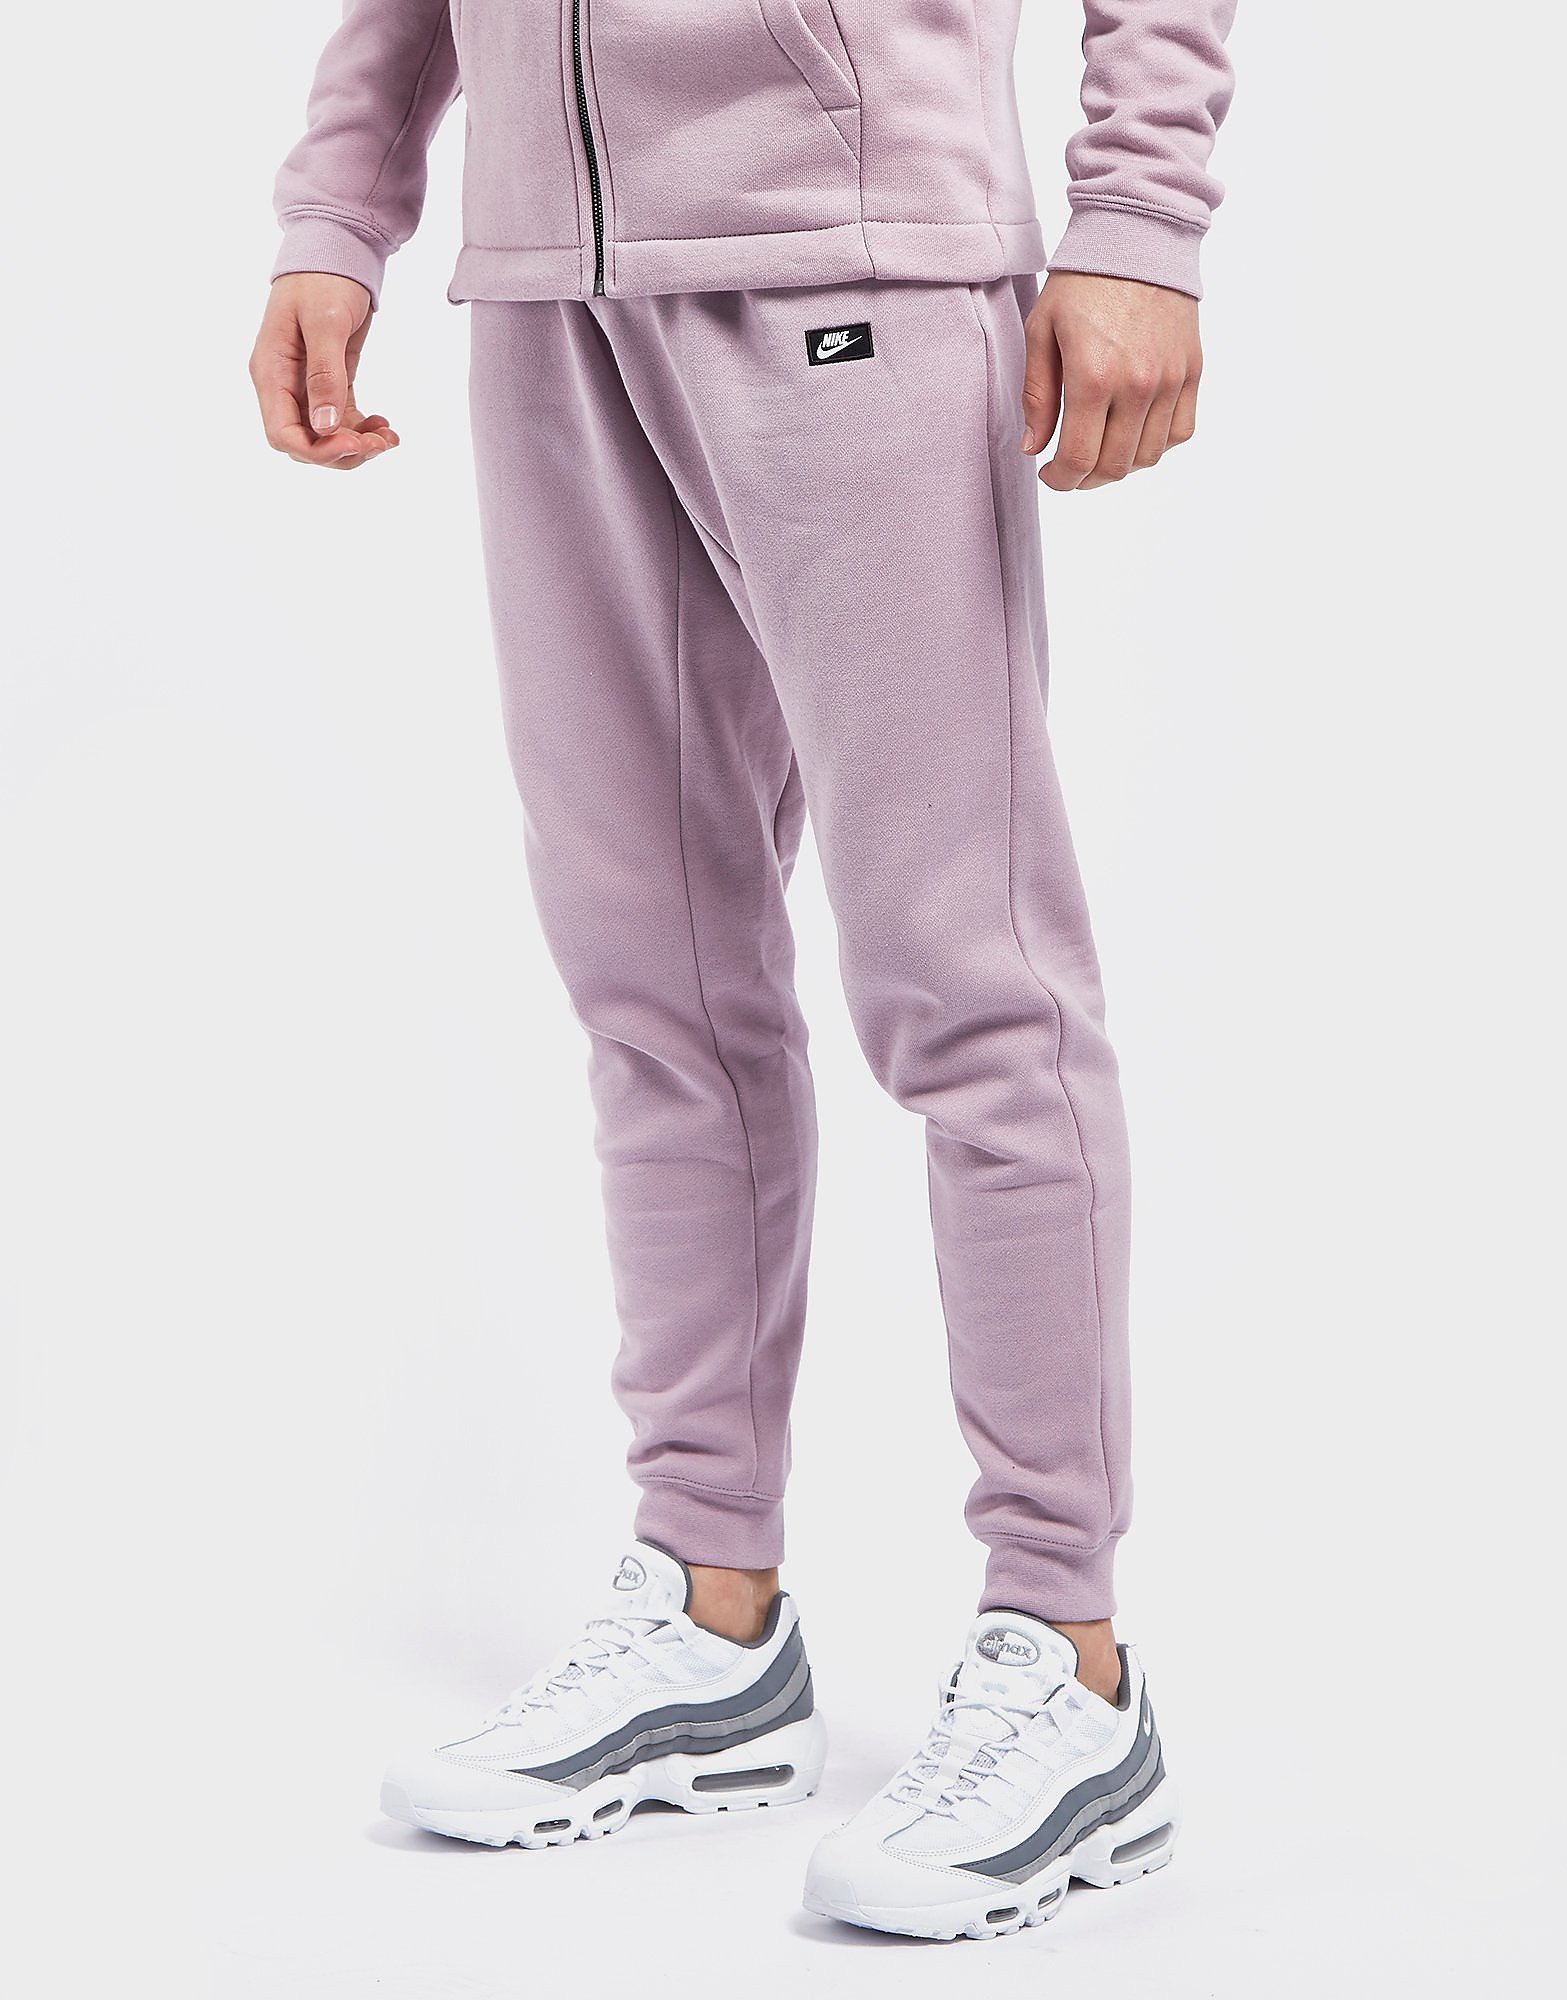 Nike Modern BB Cuffed Fleece Pants